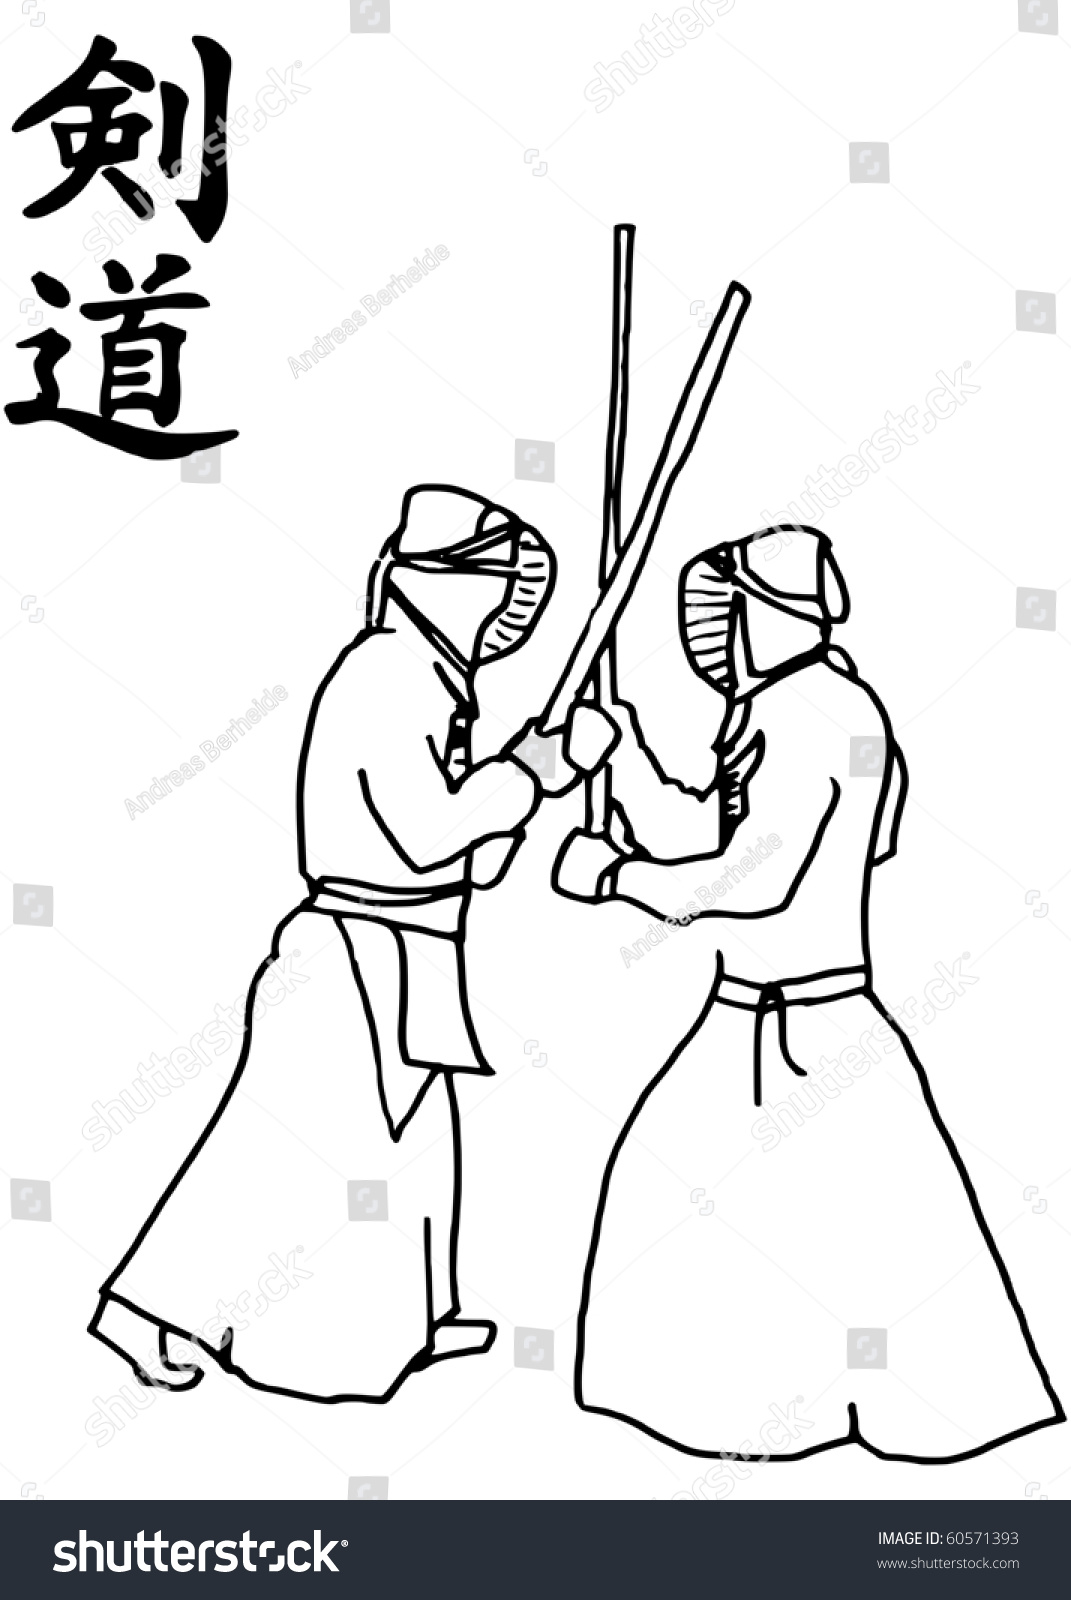 Two Kendo Fighter Position Stock Photo 60571393 - Shutterstock